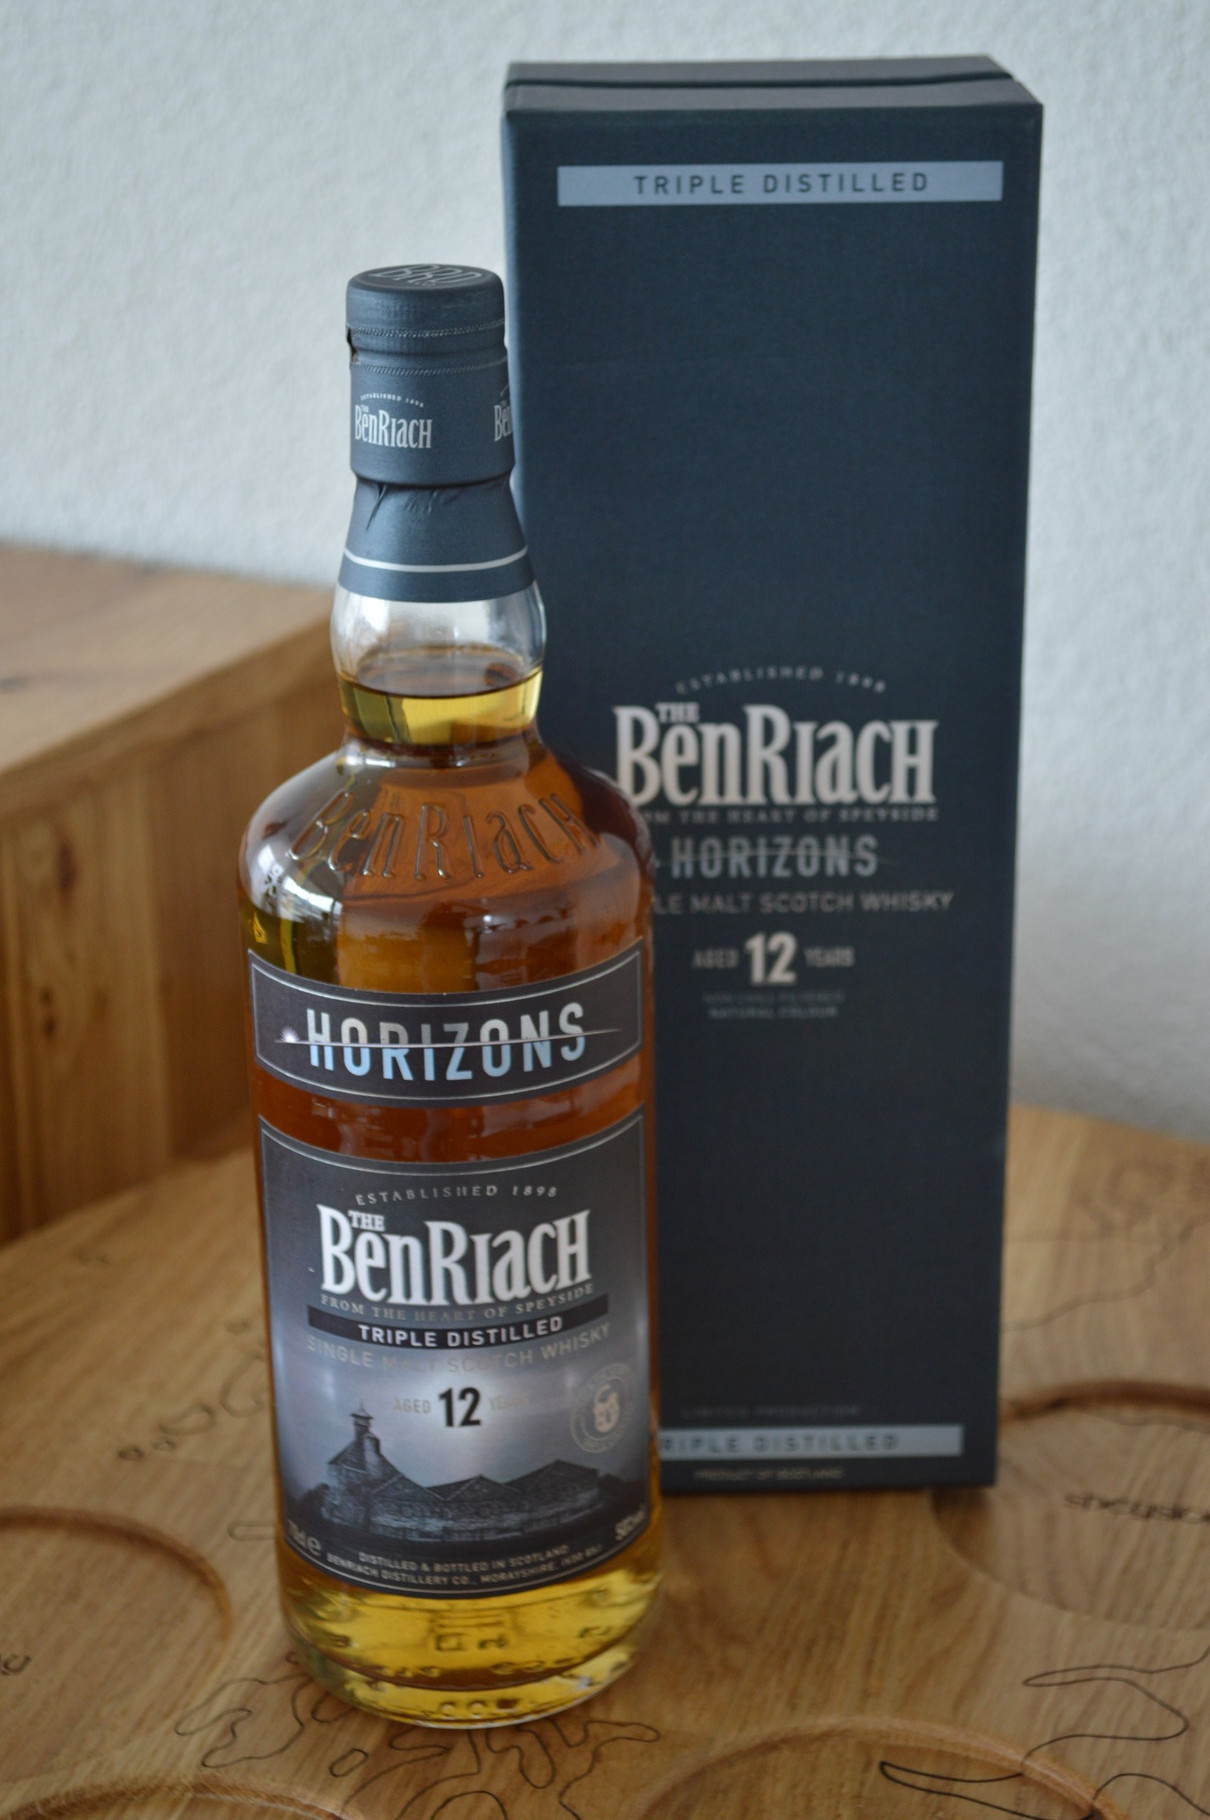 SPEYSIDE - BenRiach* - Aged: 12 years - Bottler: Original - 70cl - 50% - Horizons